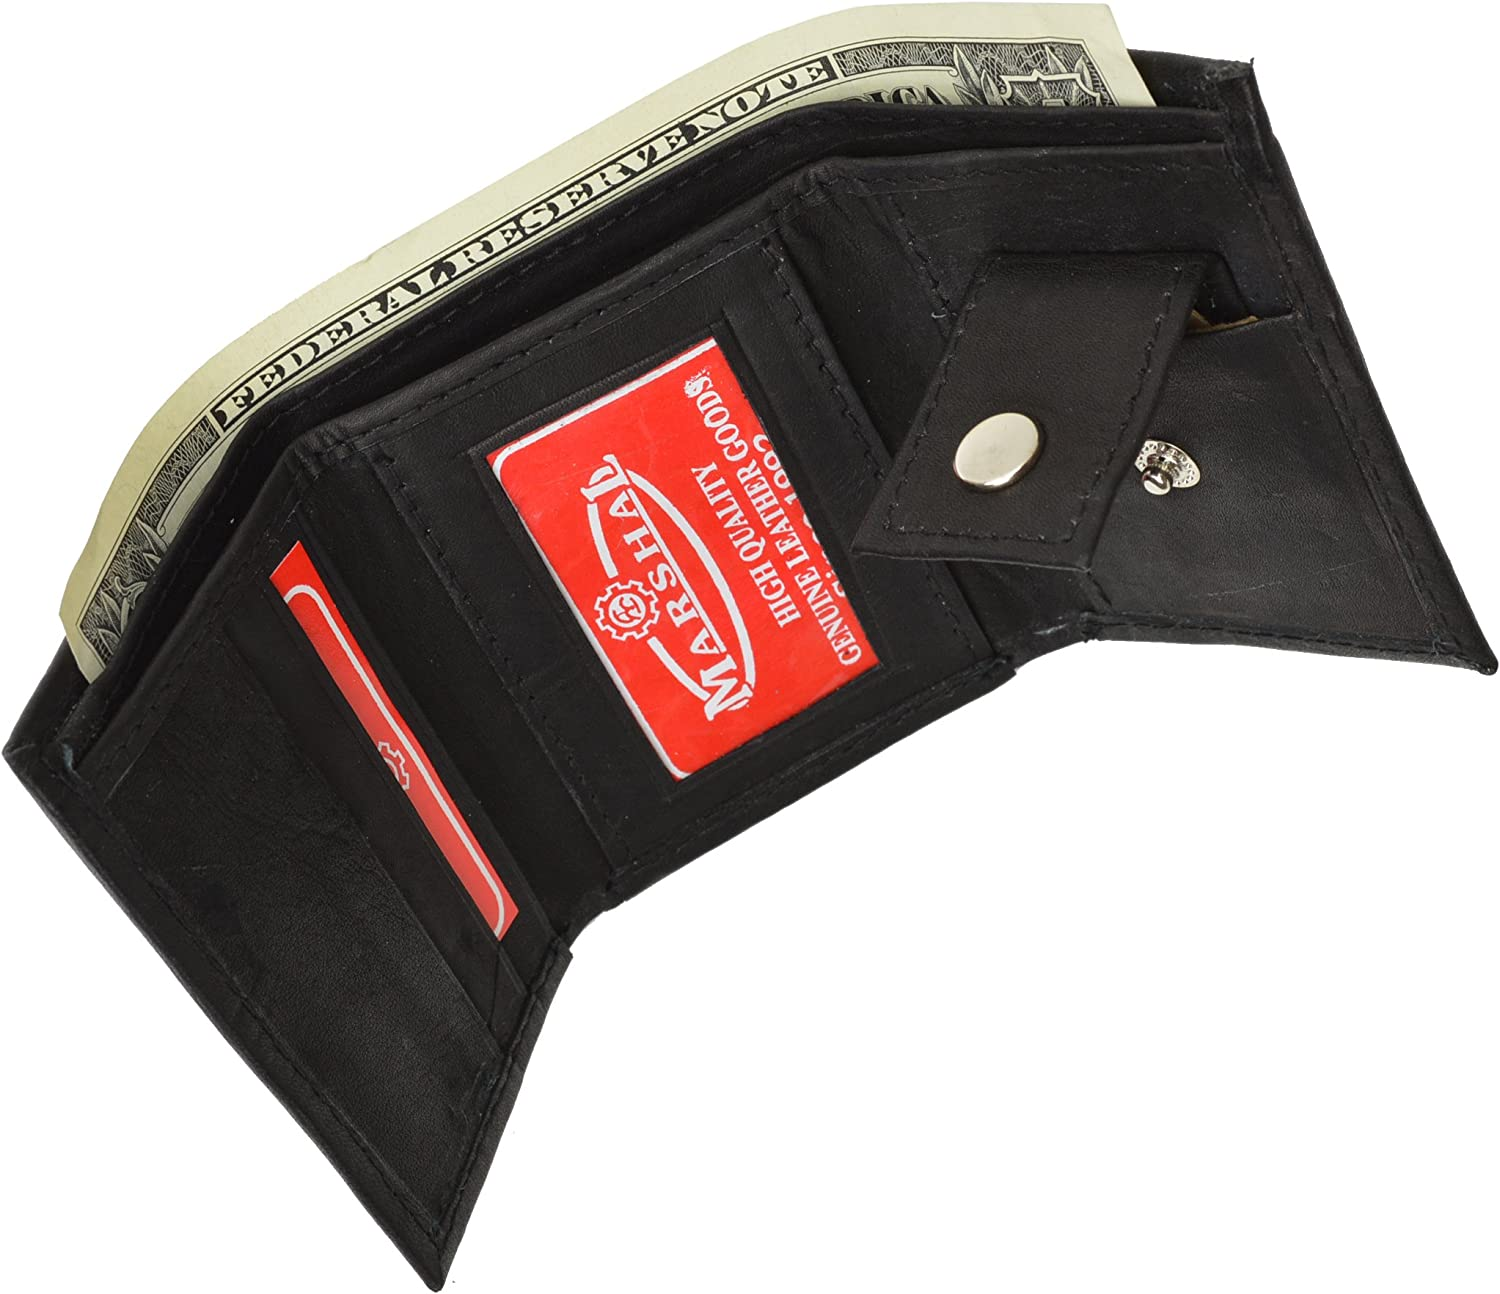 Leather Children's Wallet - Style mw825 (Black) : Clothing, Shoes & Jewelry